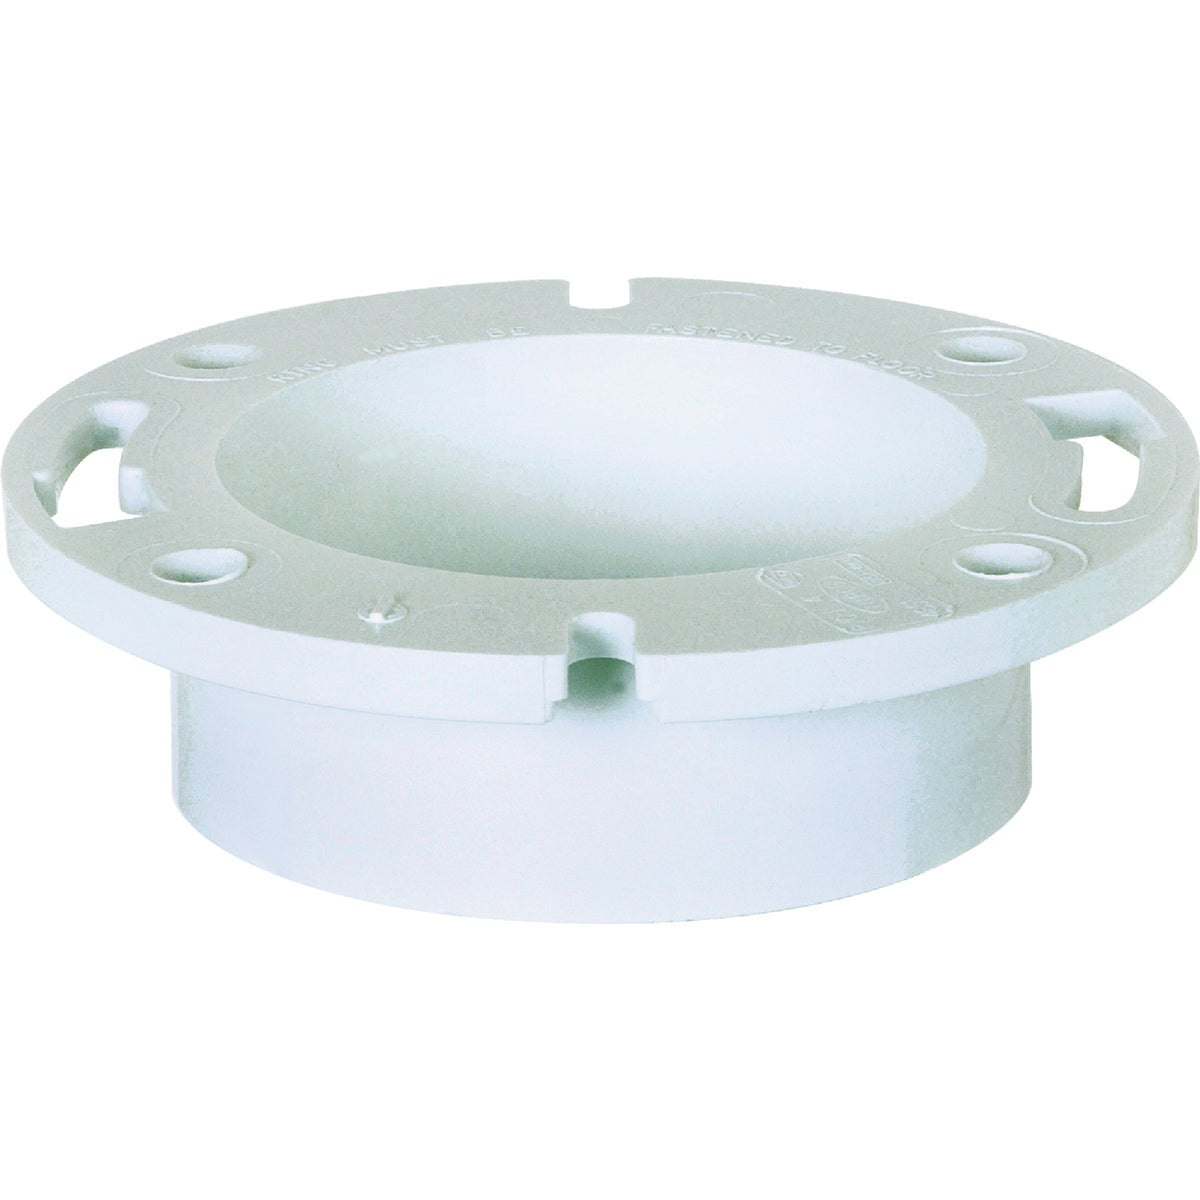 4X3 PVC CLOSET FLANGE - 886-P by Sioux Chief Mfg